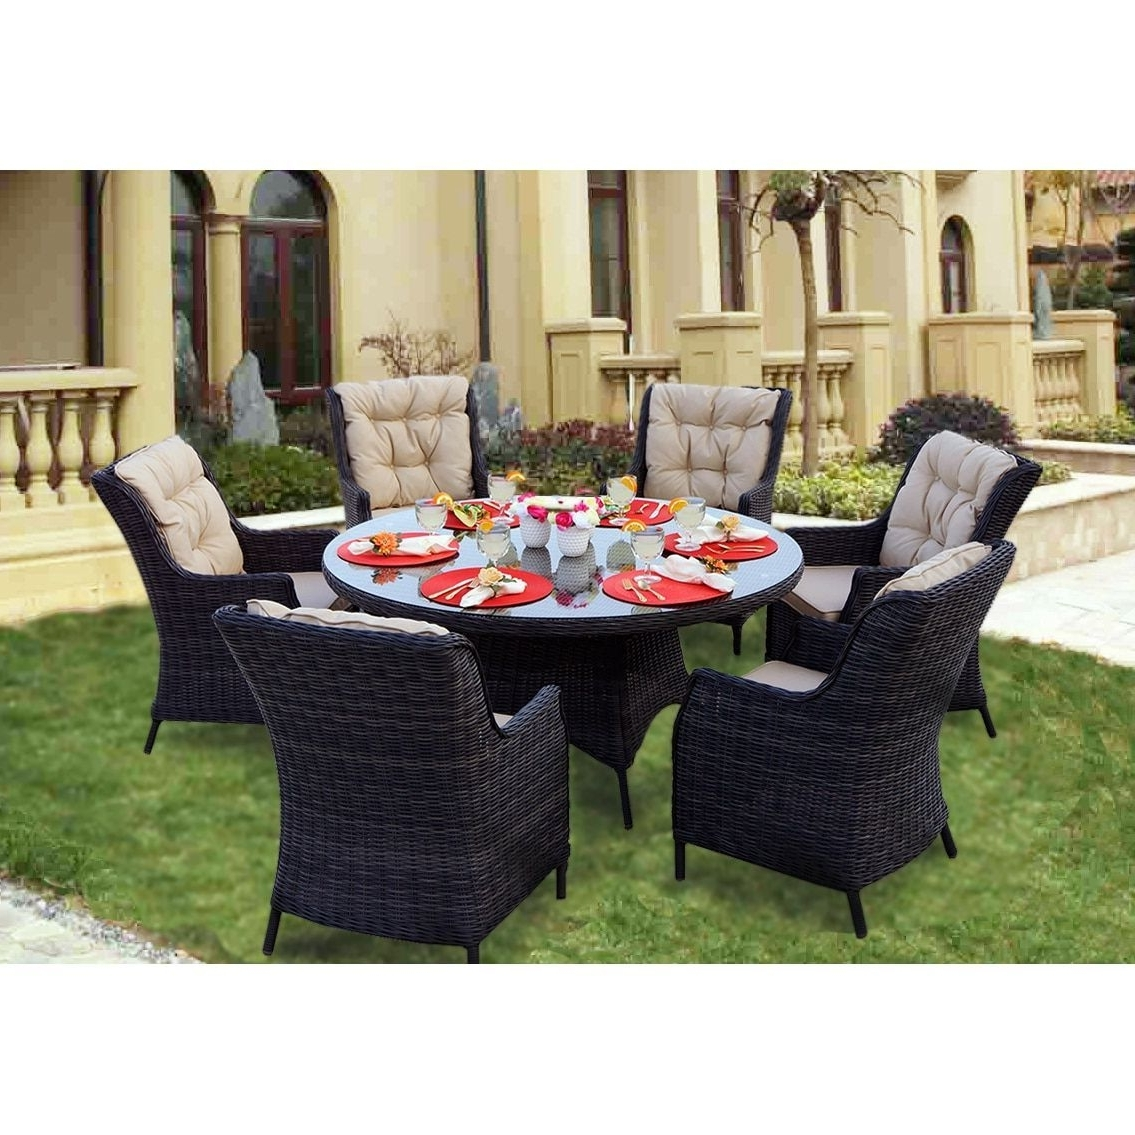 Valencia 60 Inch Round Dining Tables regarding Popular Darlee Valencia Charcoal (Grey) Wicker 7-Piece Dining Set With